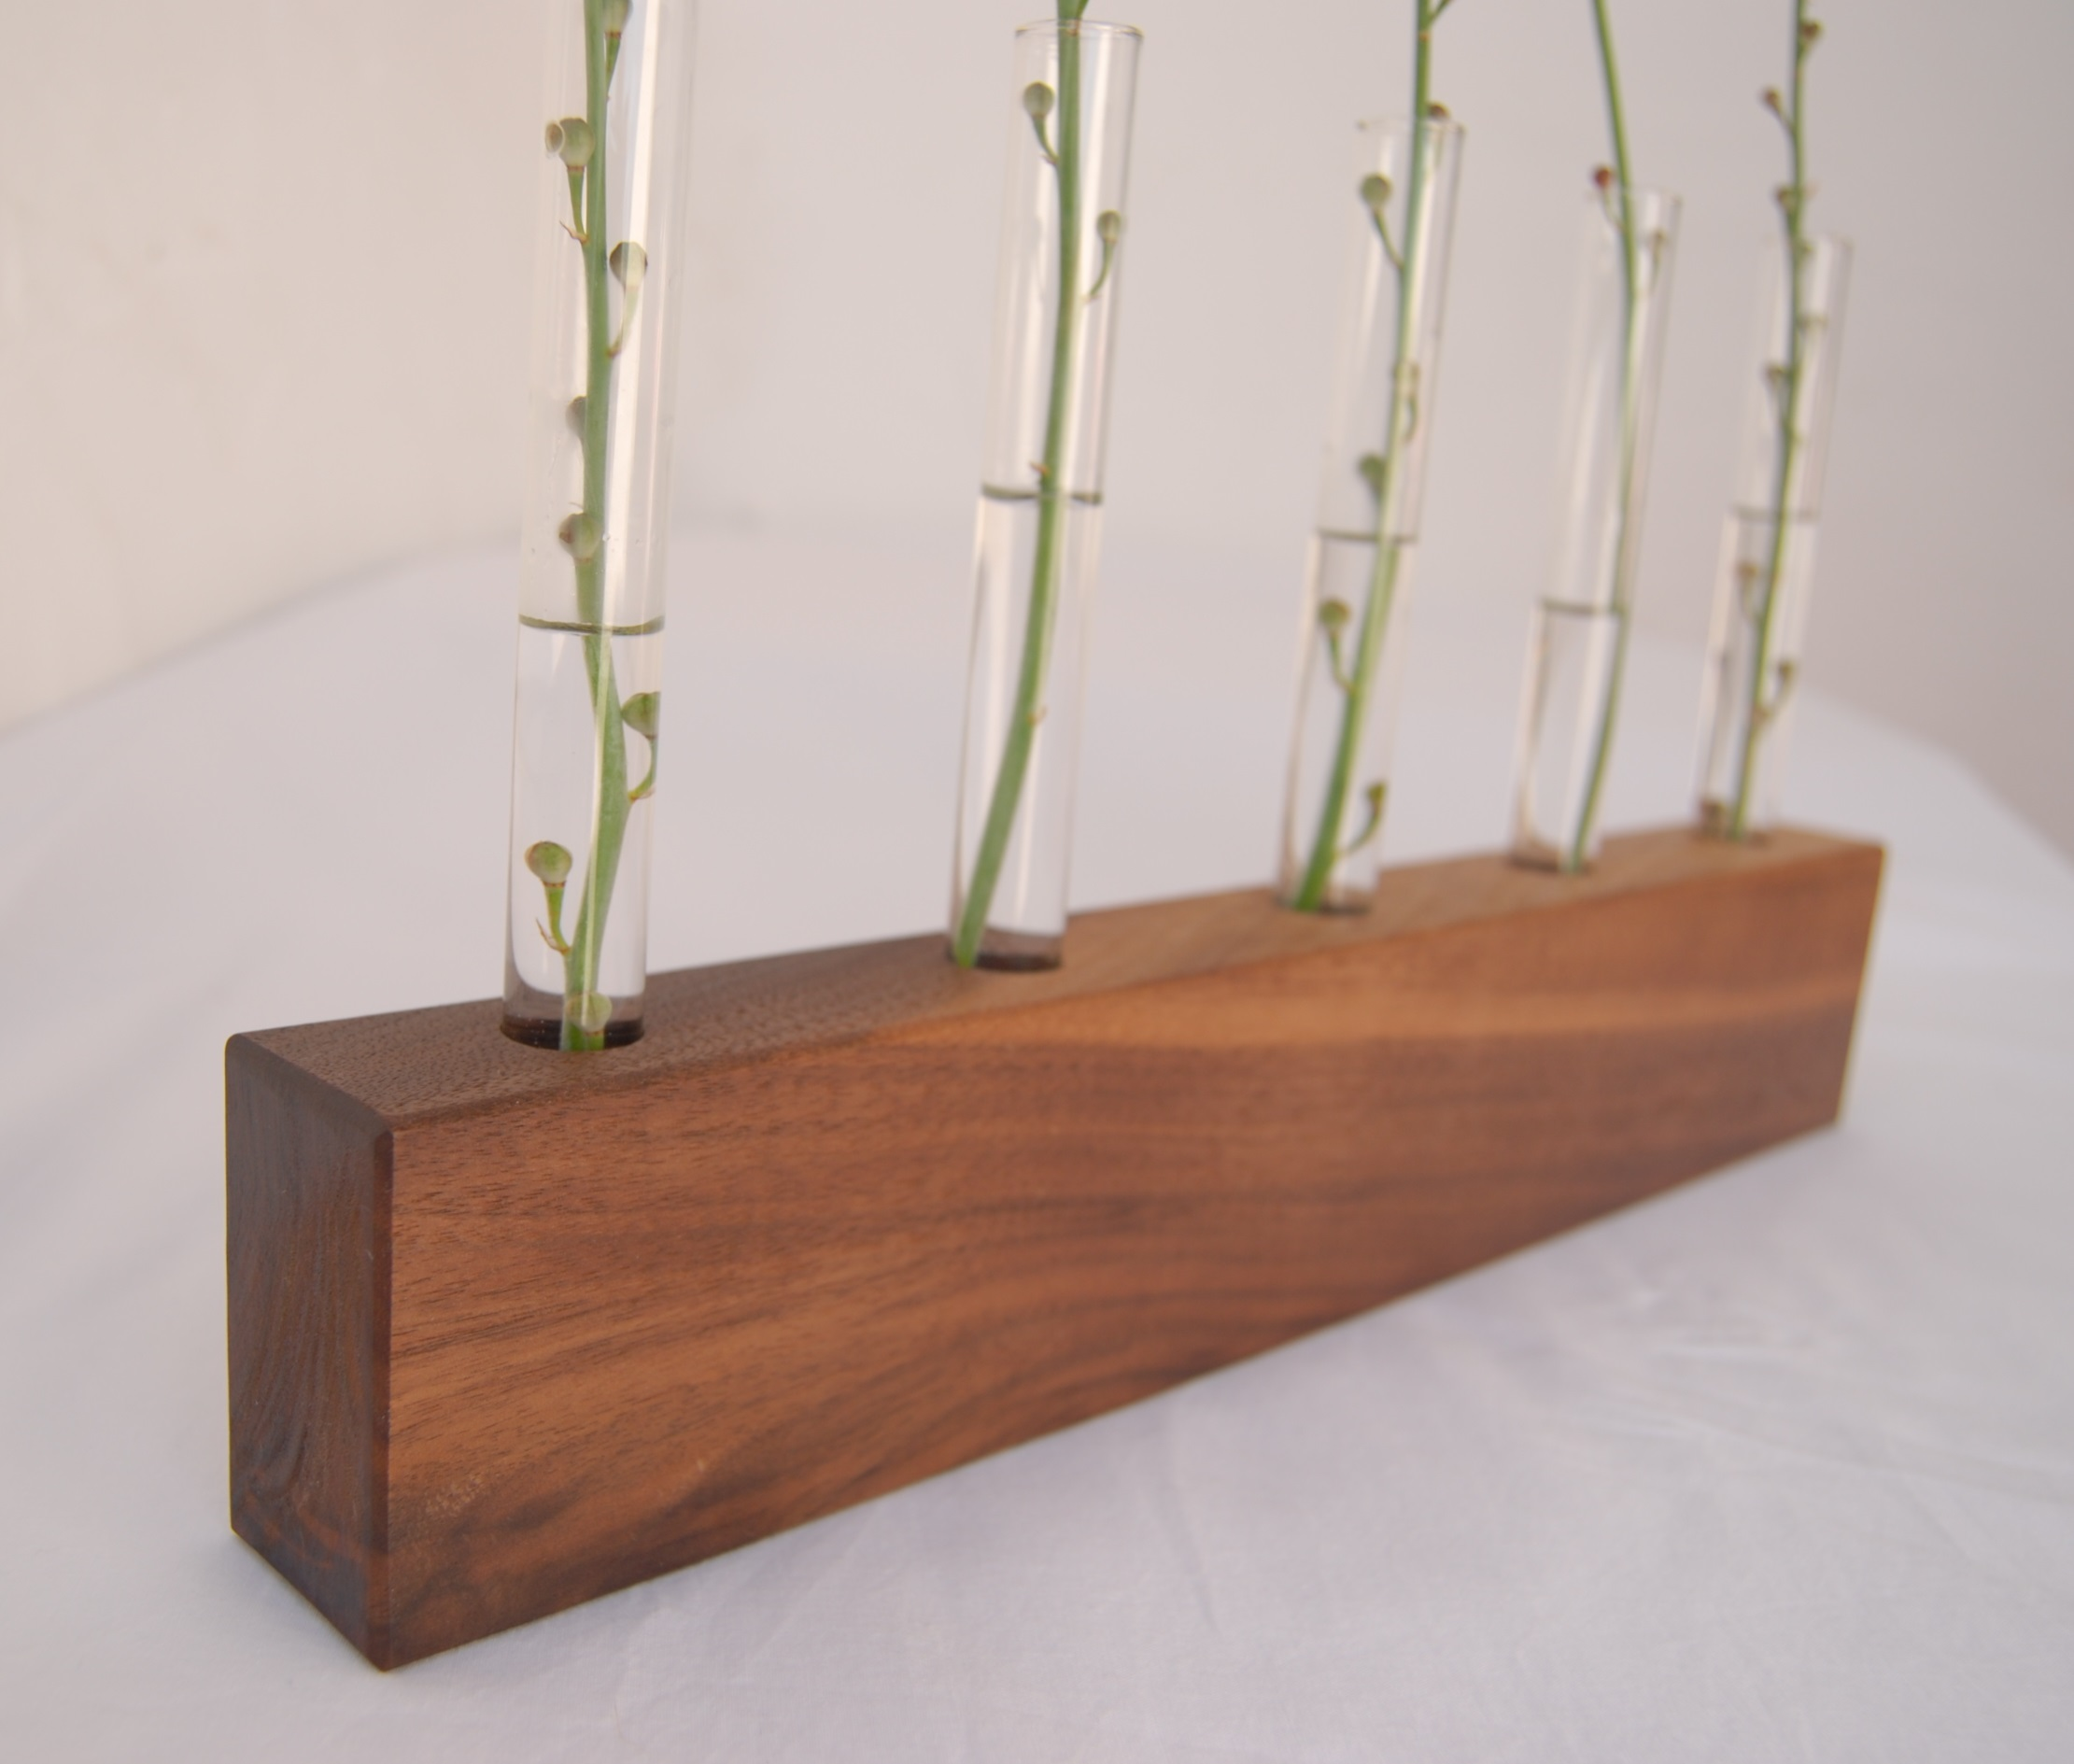 Walnut flower display block with test tubes. /  Expositor de flores en madera de nogal con tubos de ensayo.